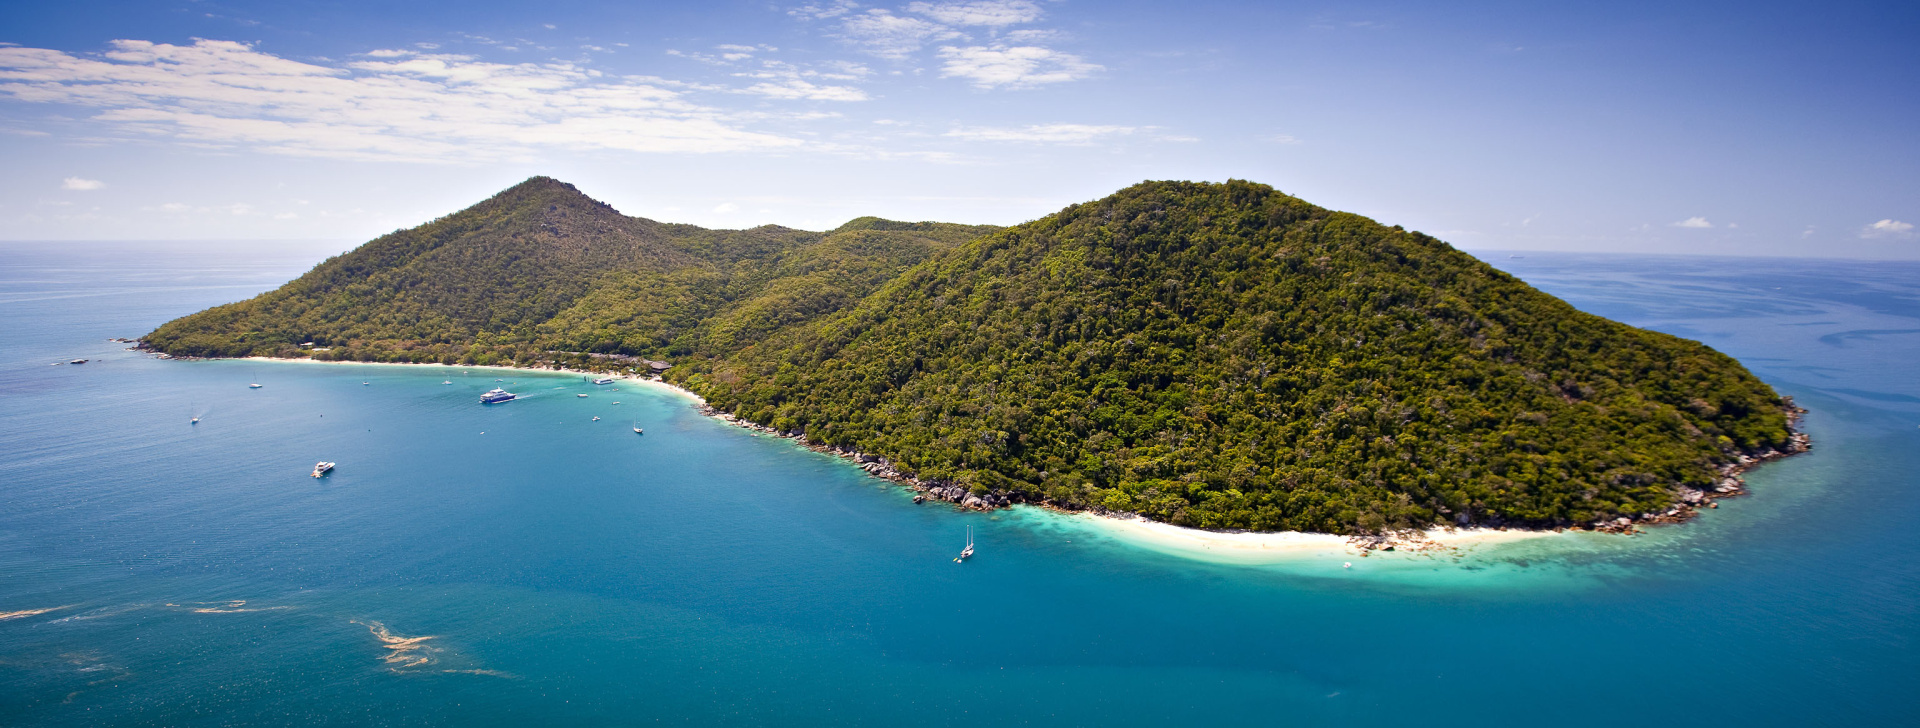 Fitzroy Island Resort - Cairns - Tourism Town - Find ...